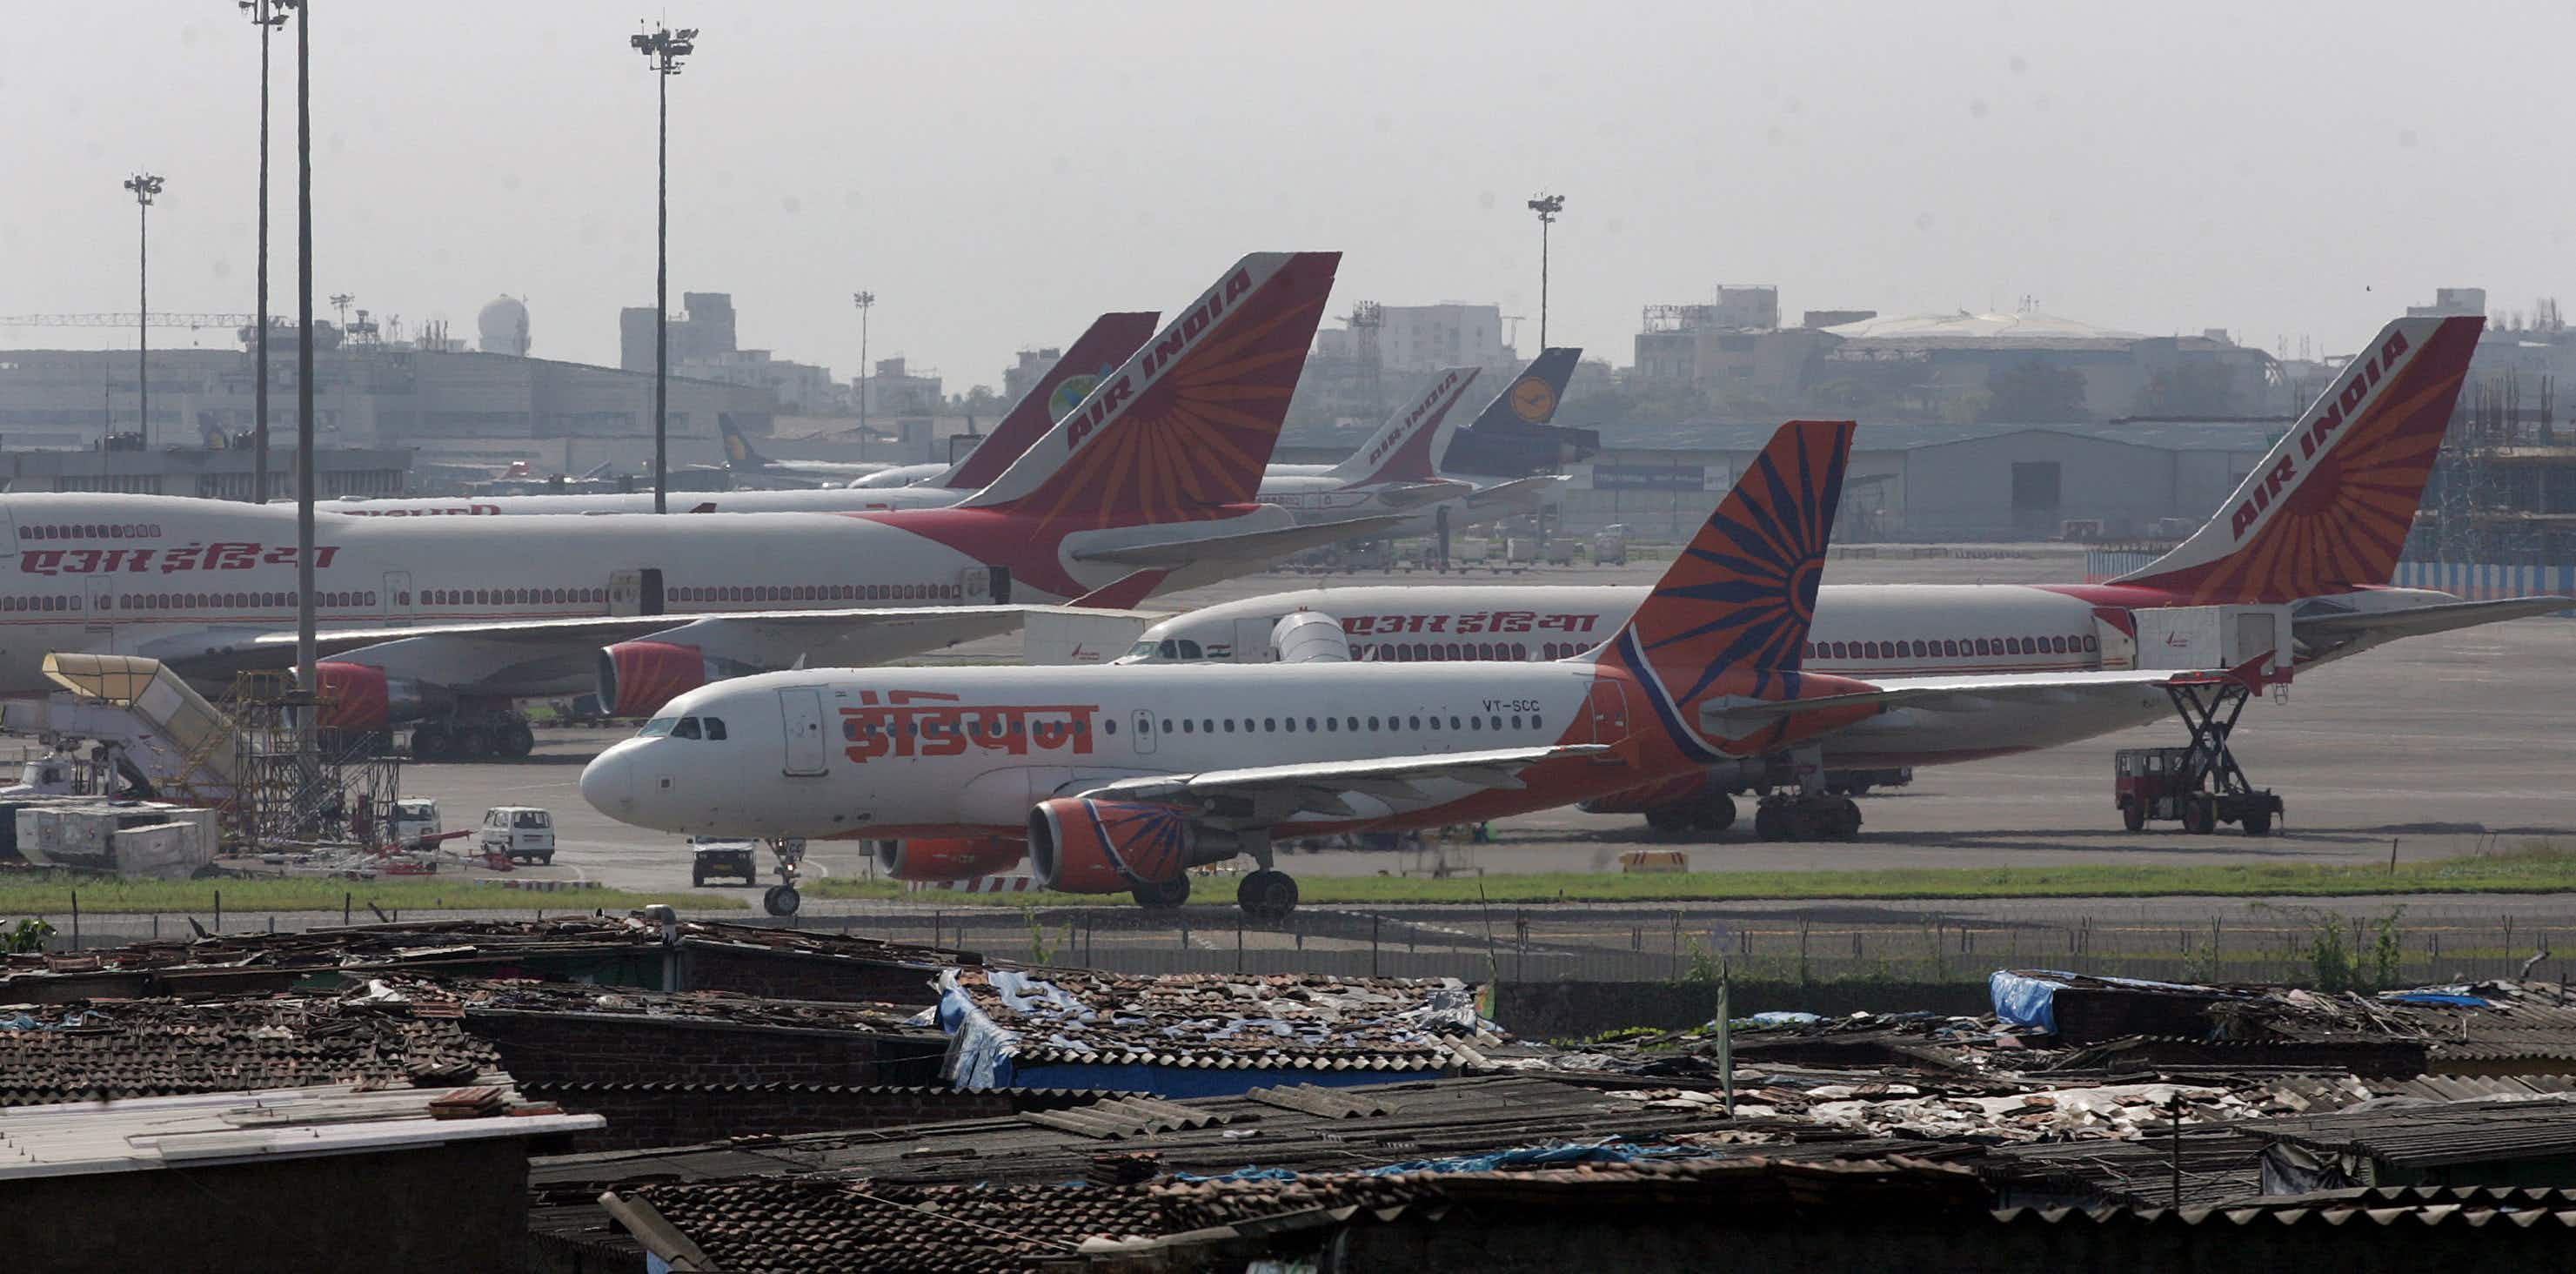 India goes on aircraft shopping splurge as domestic aviation surges by 20%